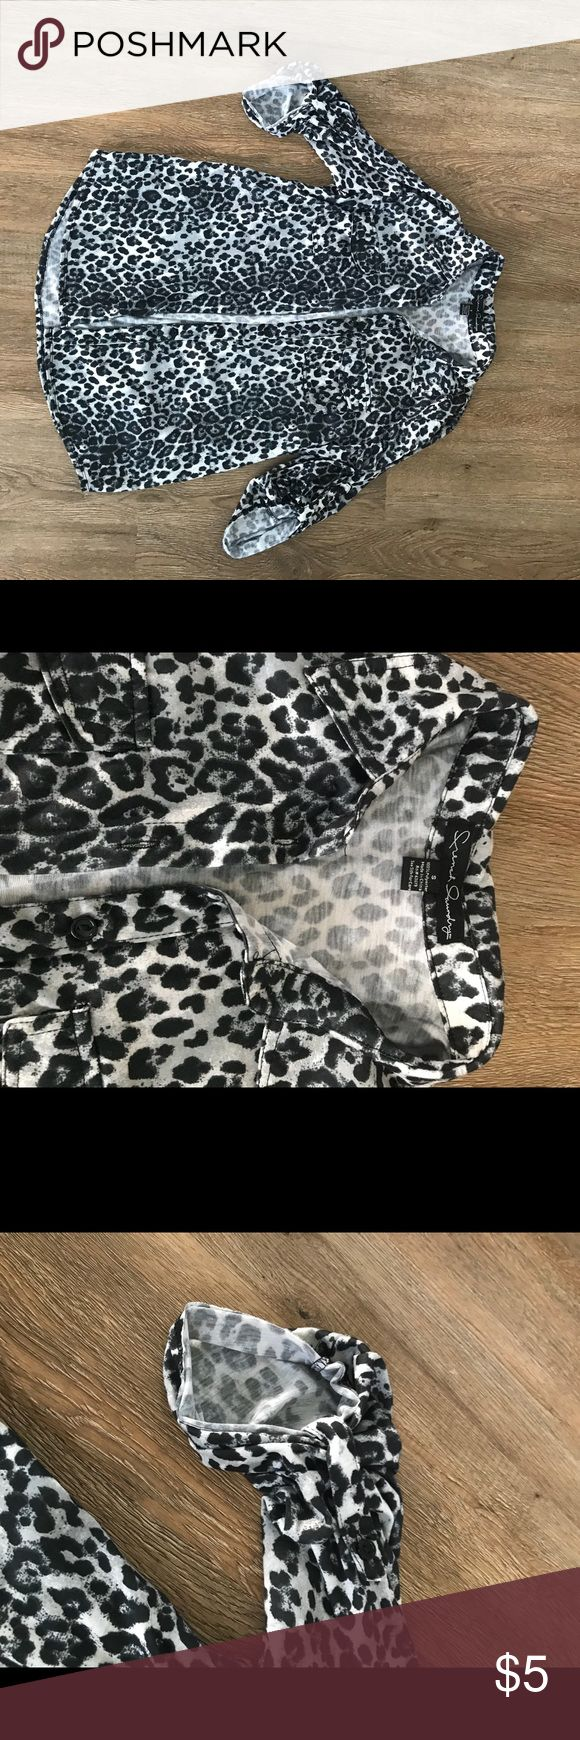 Beautiful Cheetah Print Button down This beautiful cheetah print shirt has been worn once and is in perfect condition! Pairs nicely with black pants or jeans and can be dressed up or down. Sleeves button up to give a classy look. Size: S Tops Button Down Shirts